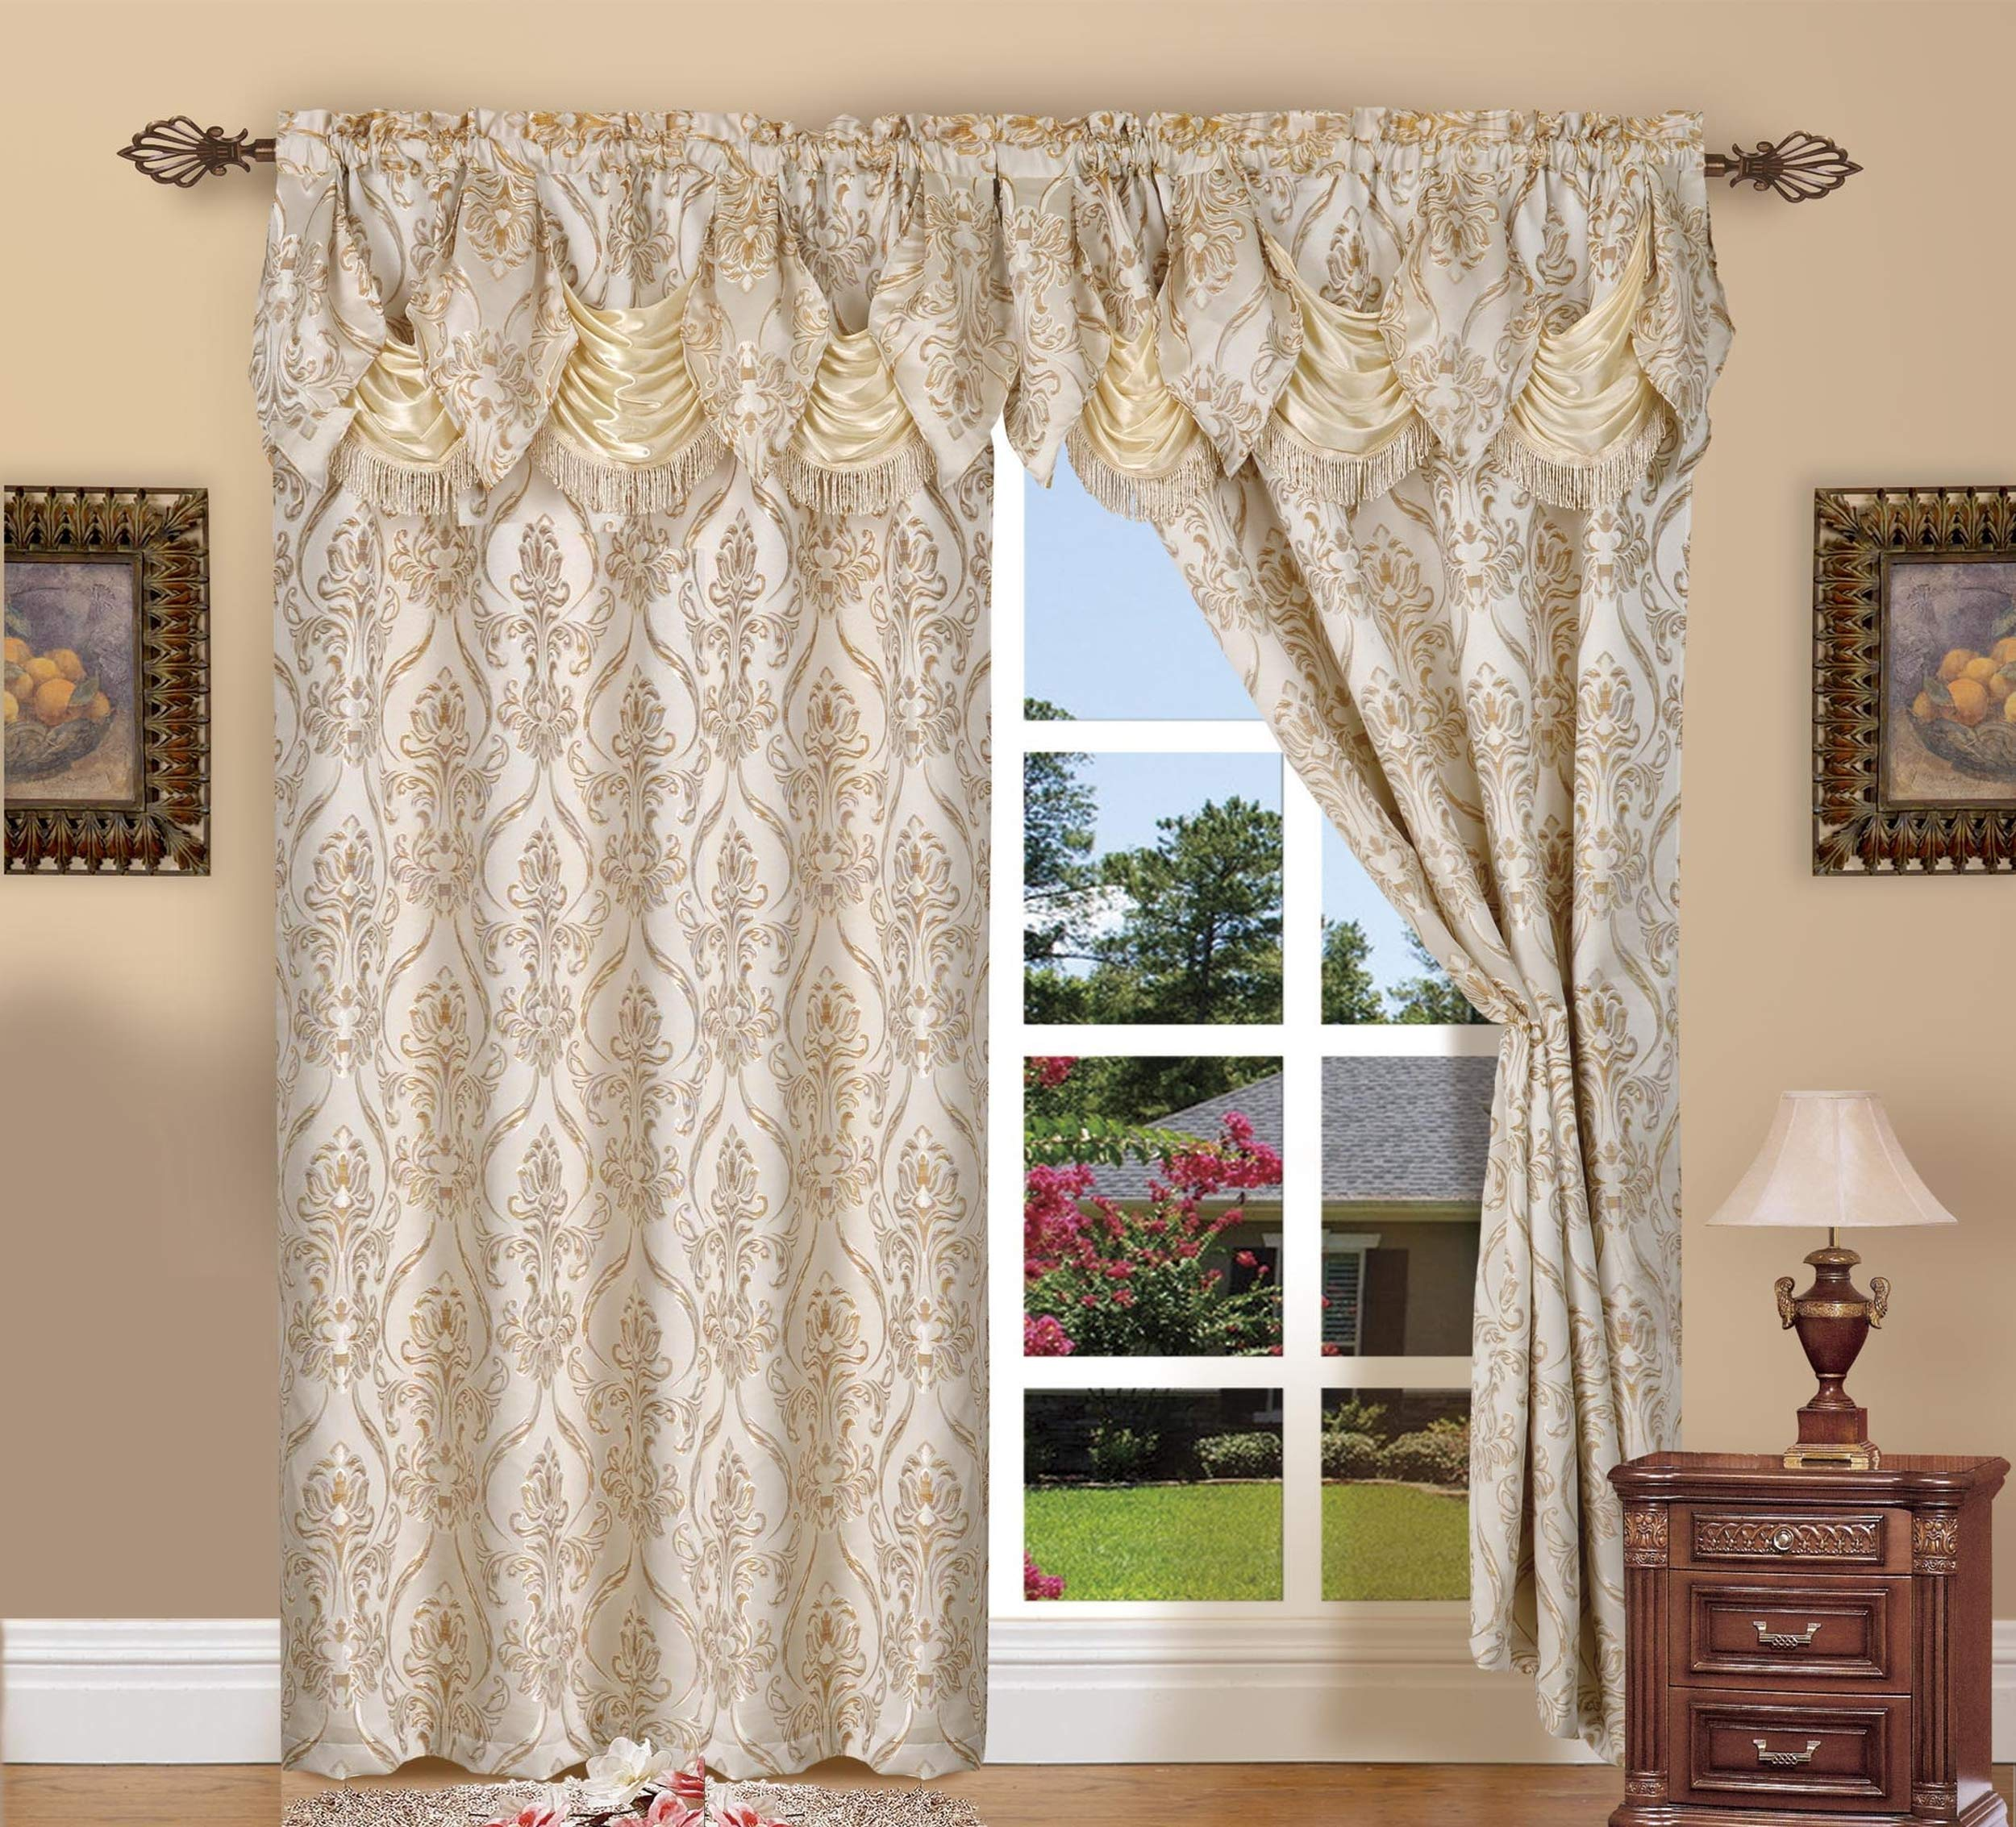 Elegant Comfort Penelopie Jacquard Look Curtain Panel Set with with Attached Waterfall Valance, Set of 2, 54x84 Inches, Beige by Elegant Comfort